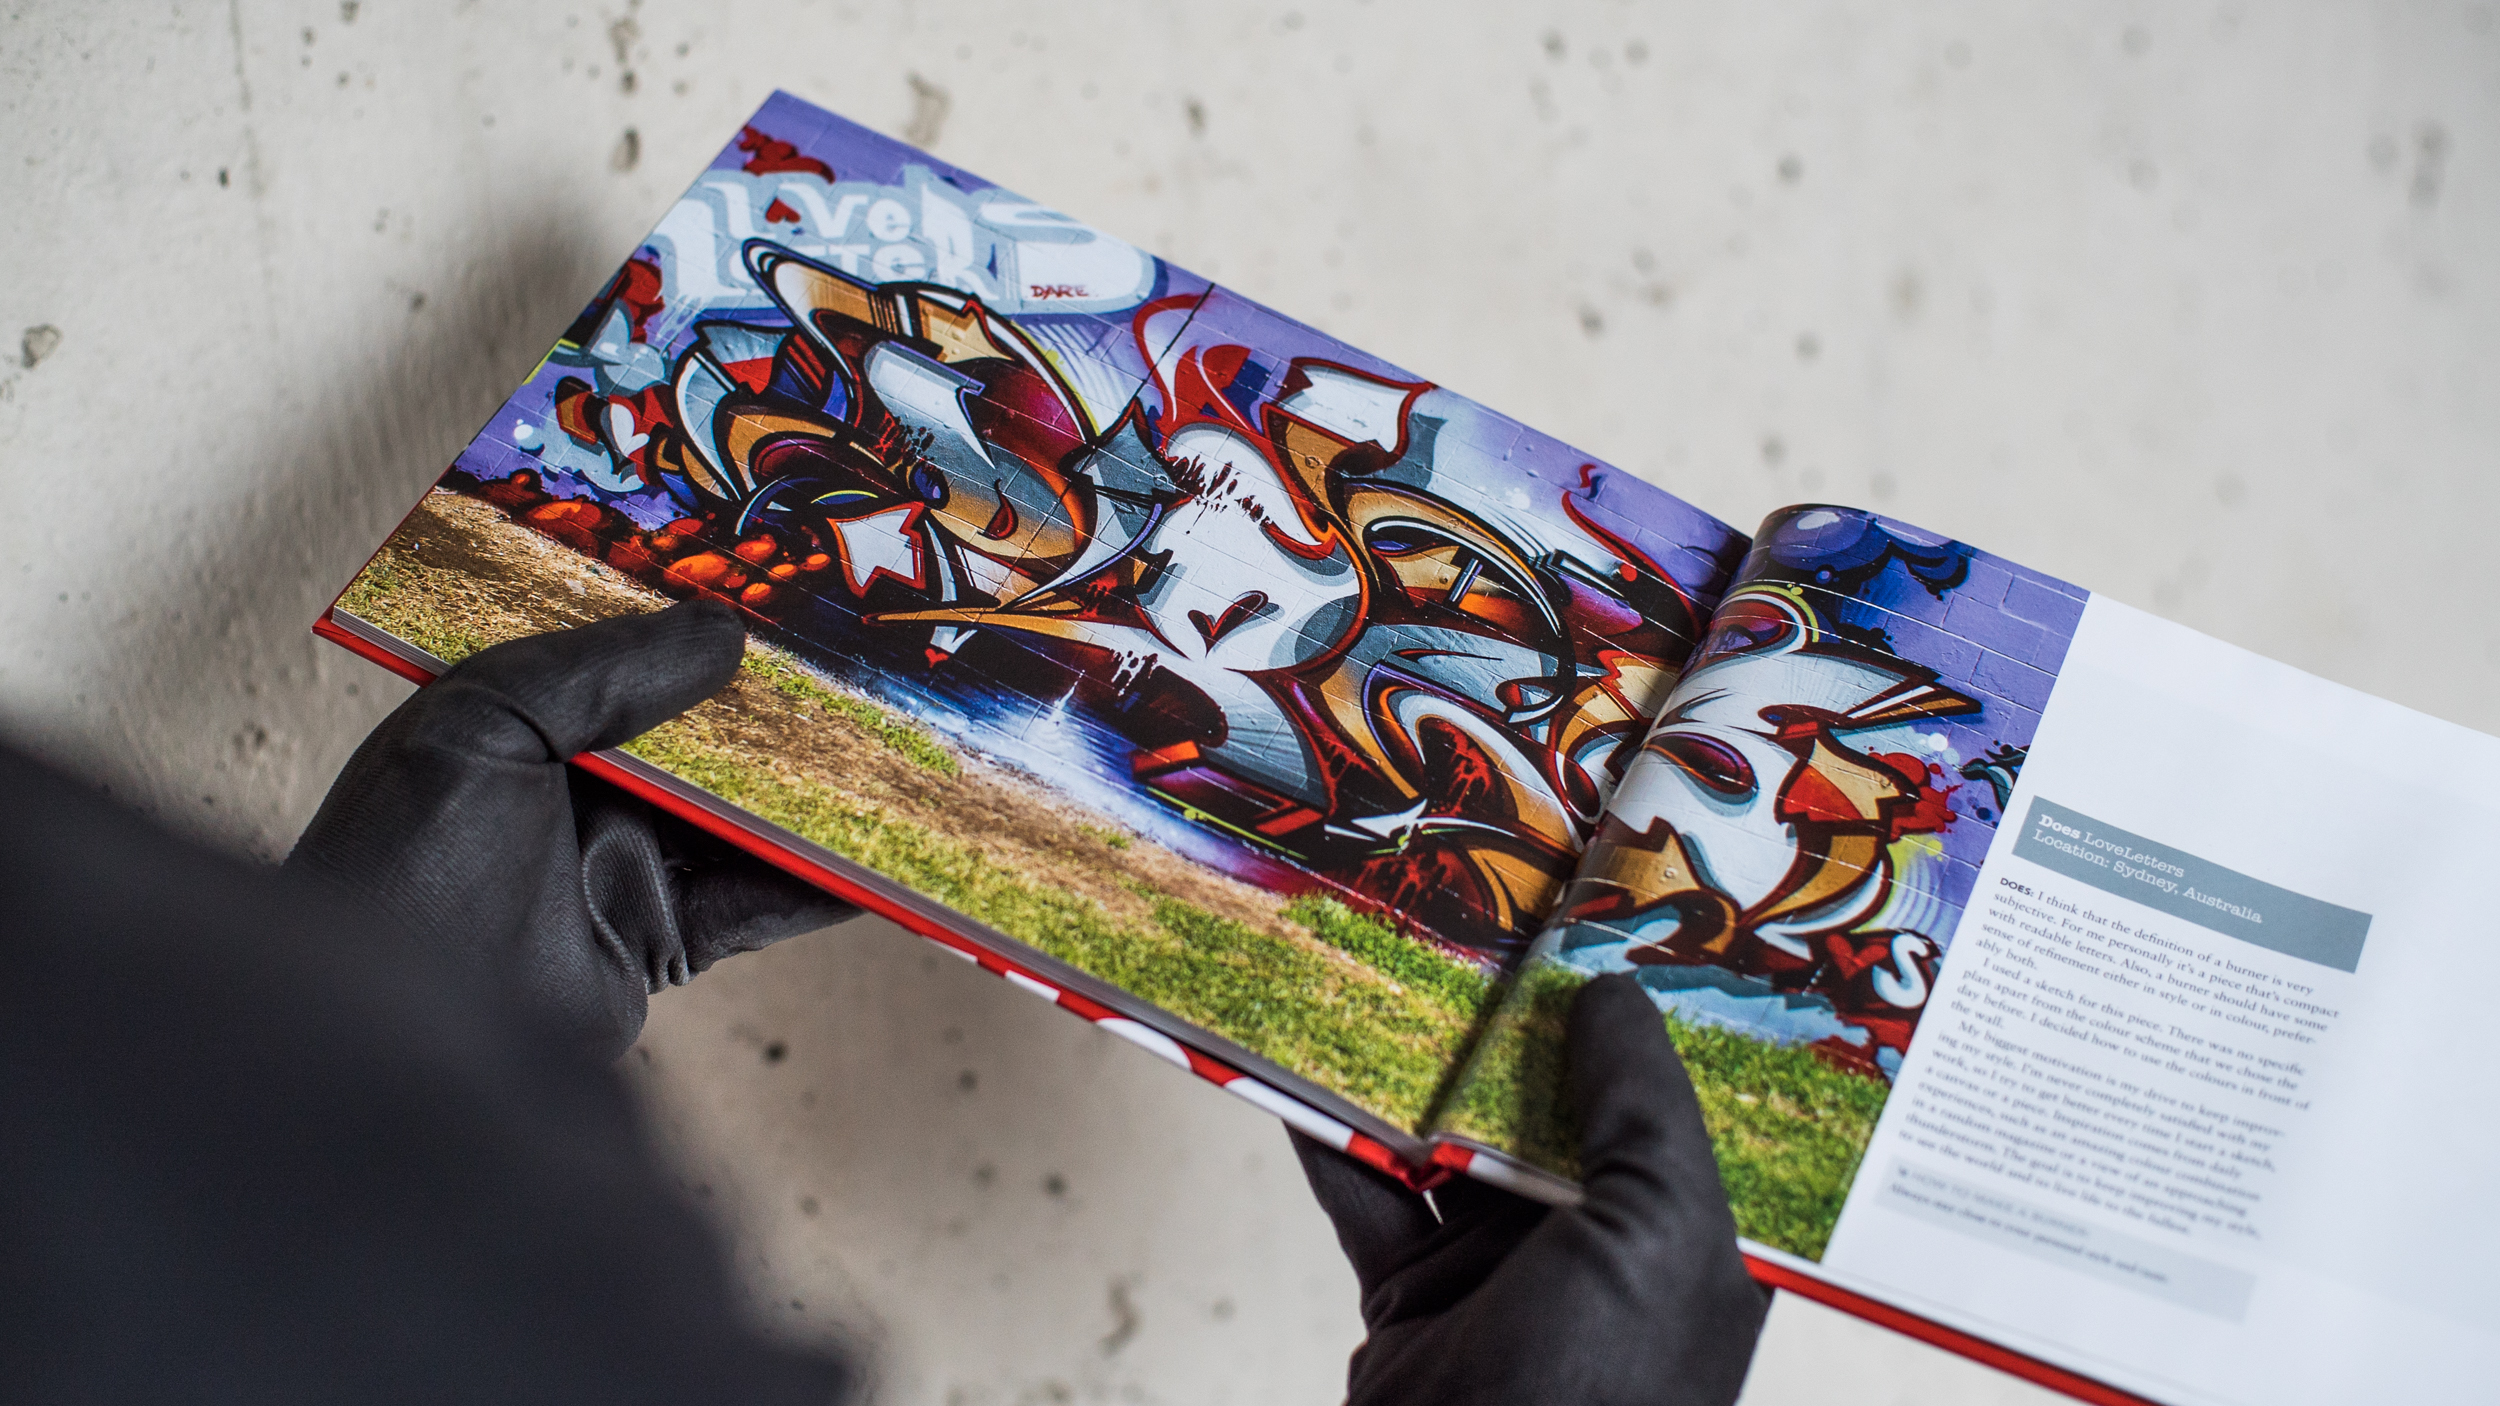 A work by Does - Book graffiti burners page 2